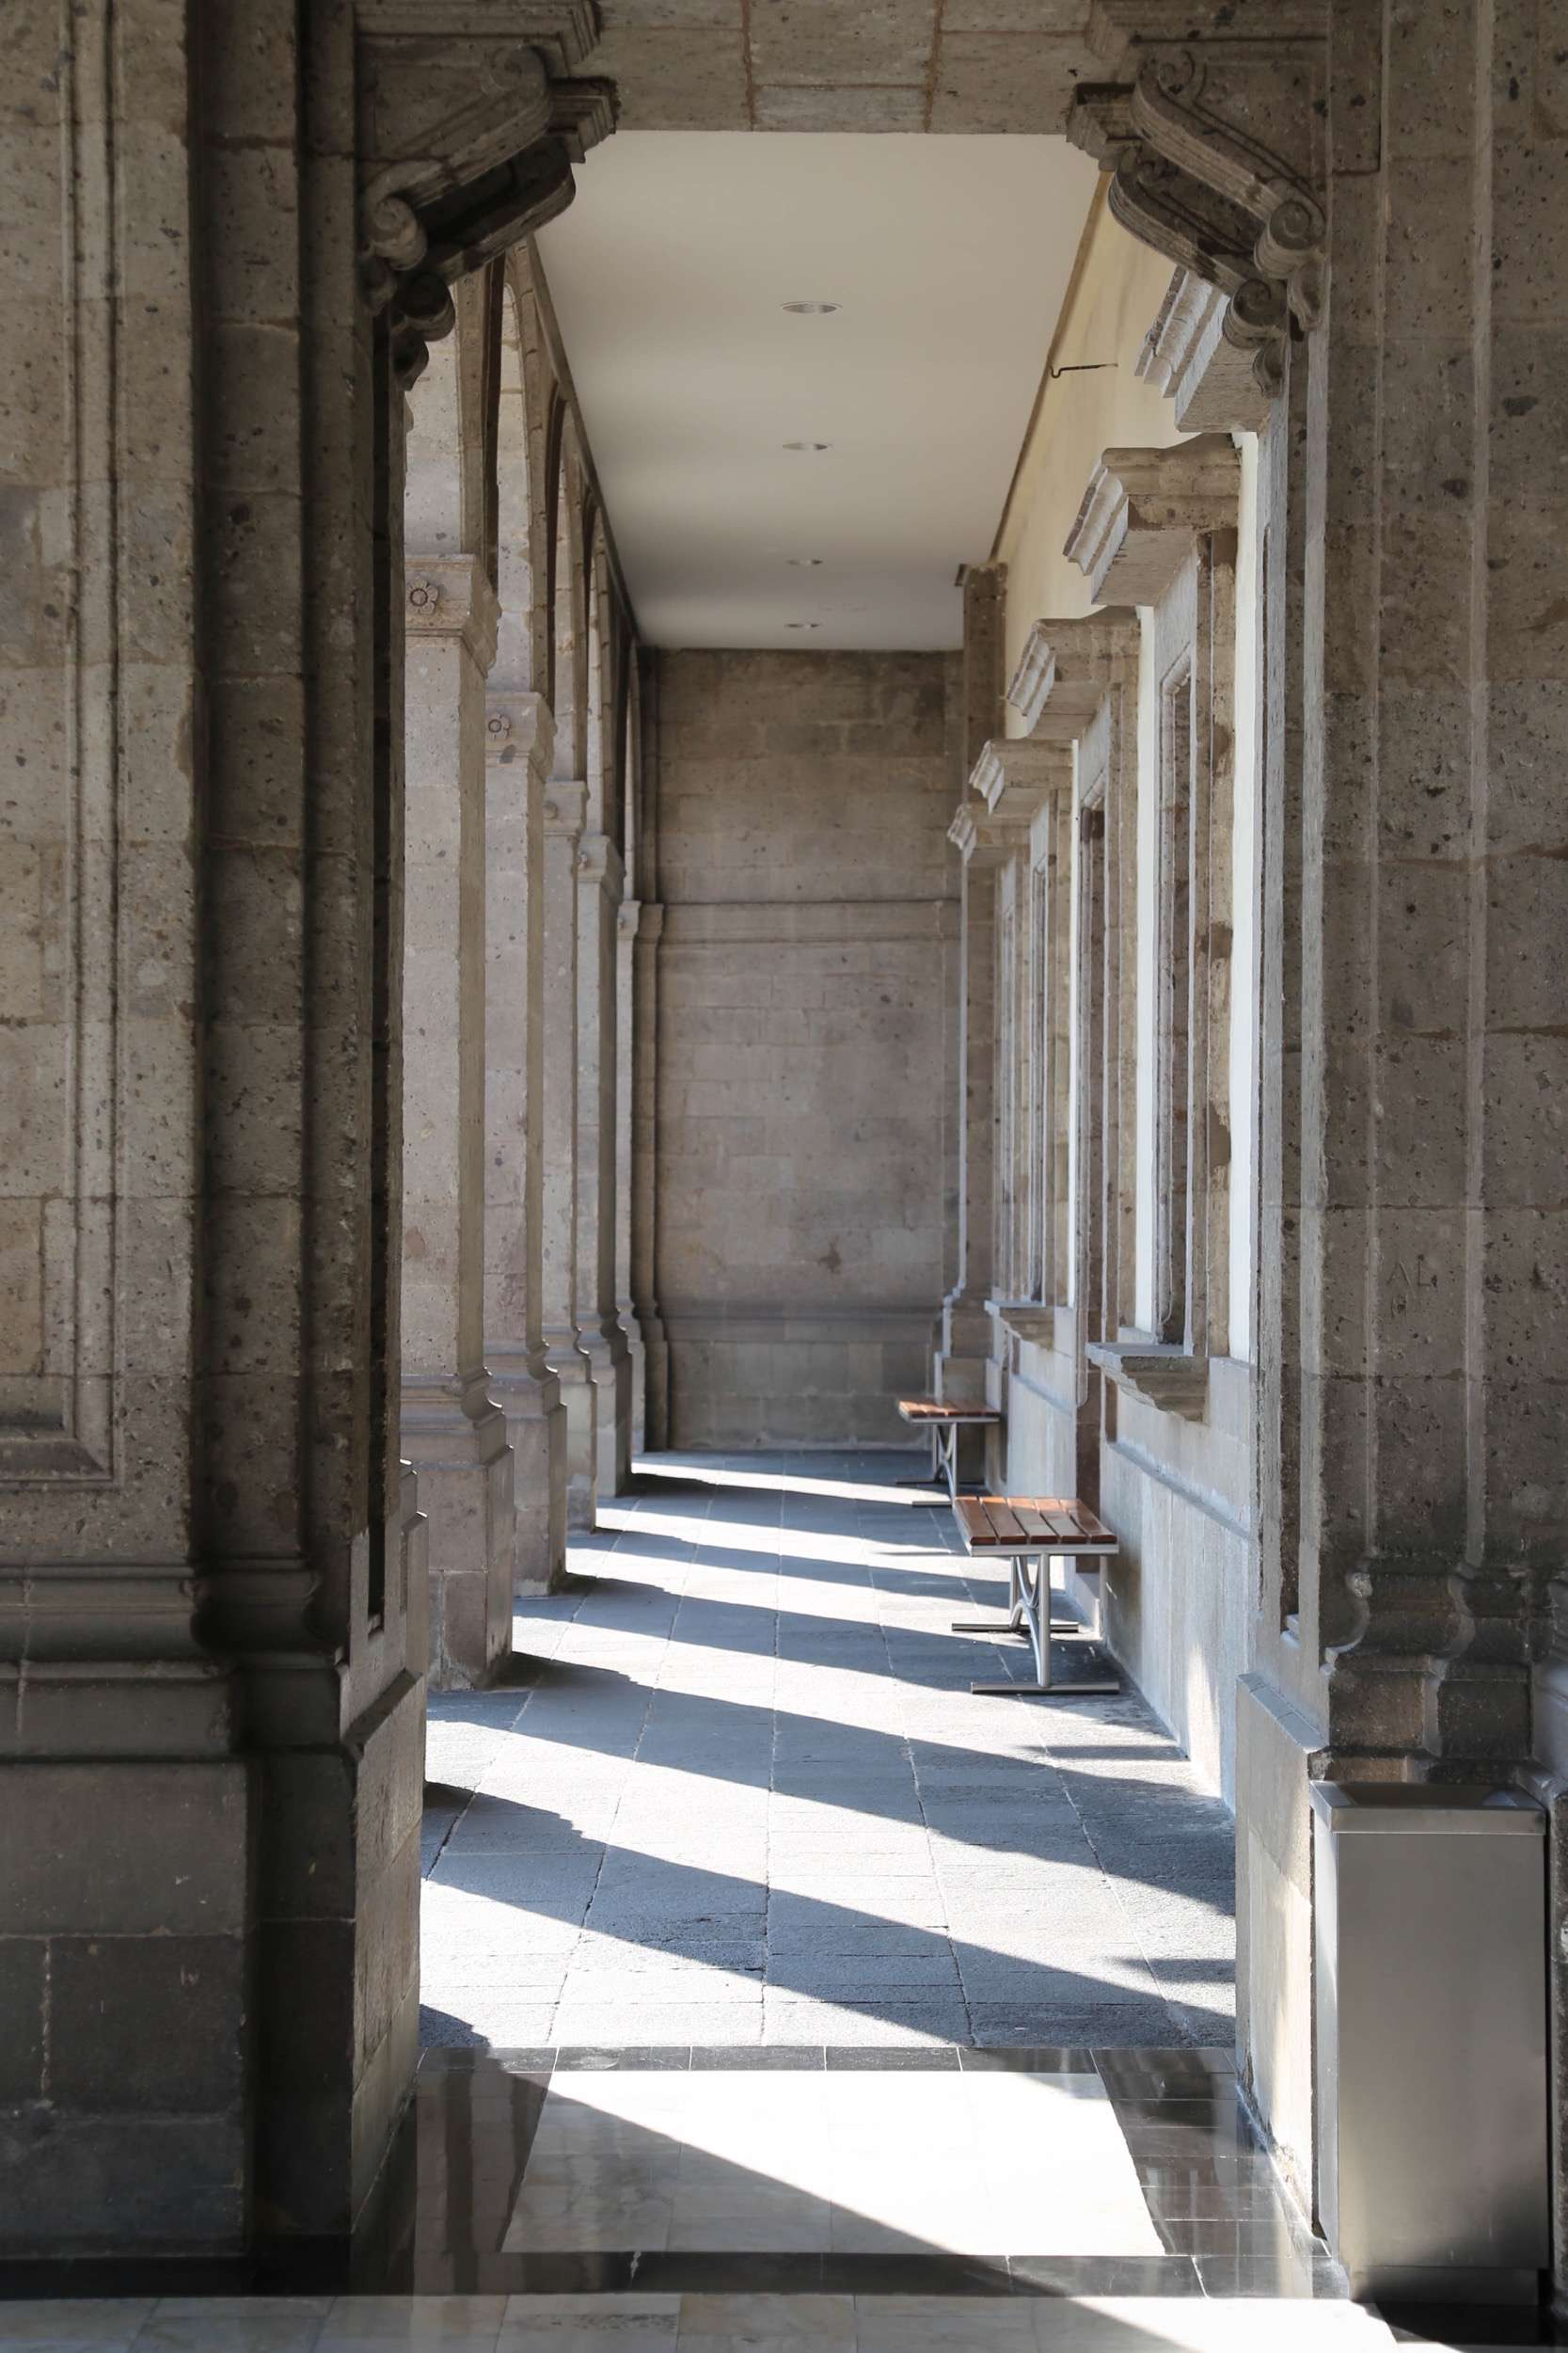 Columns and light, Chapultepec Castle.